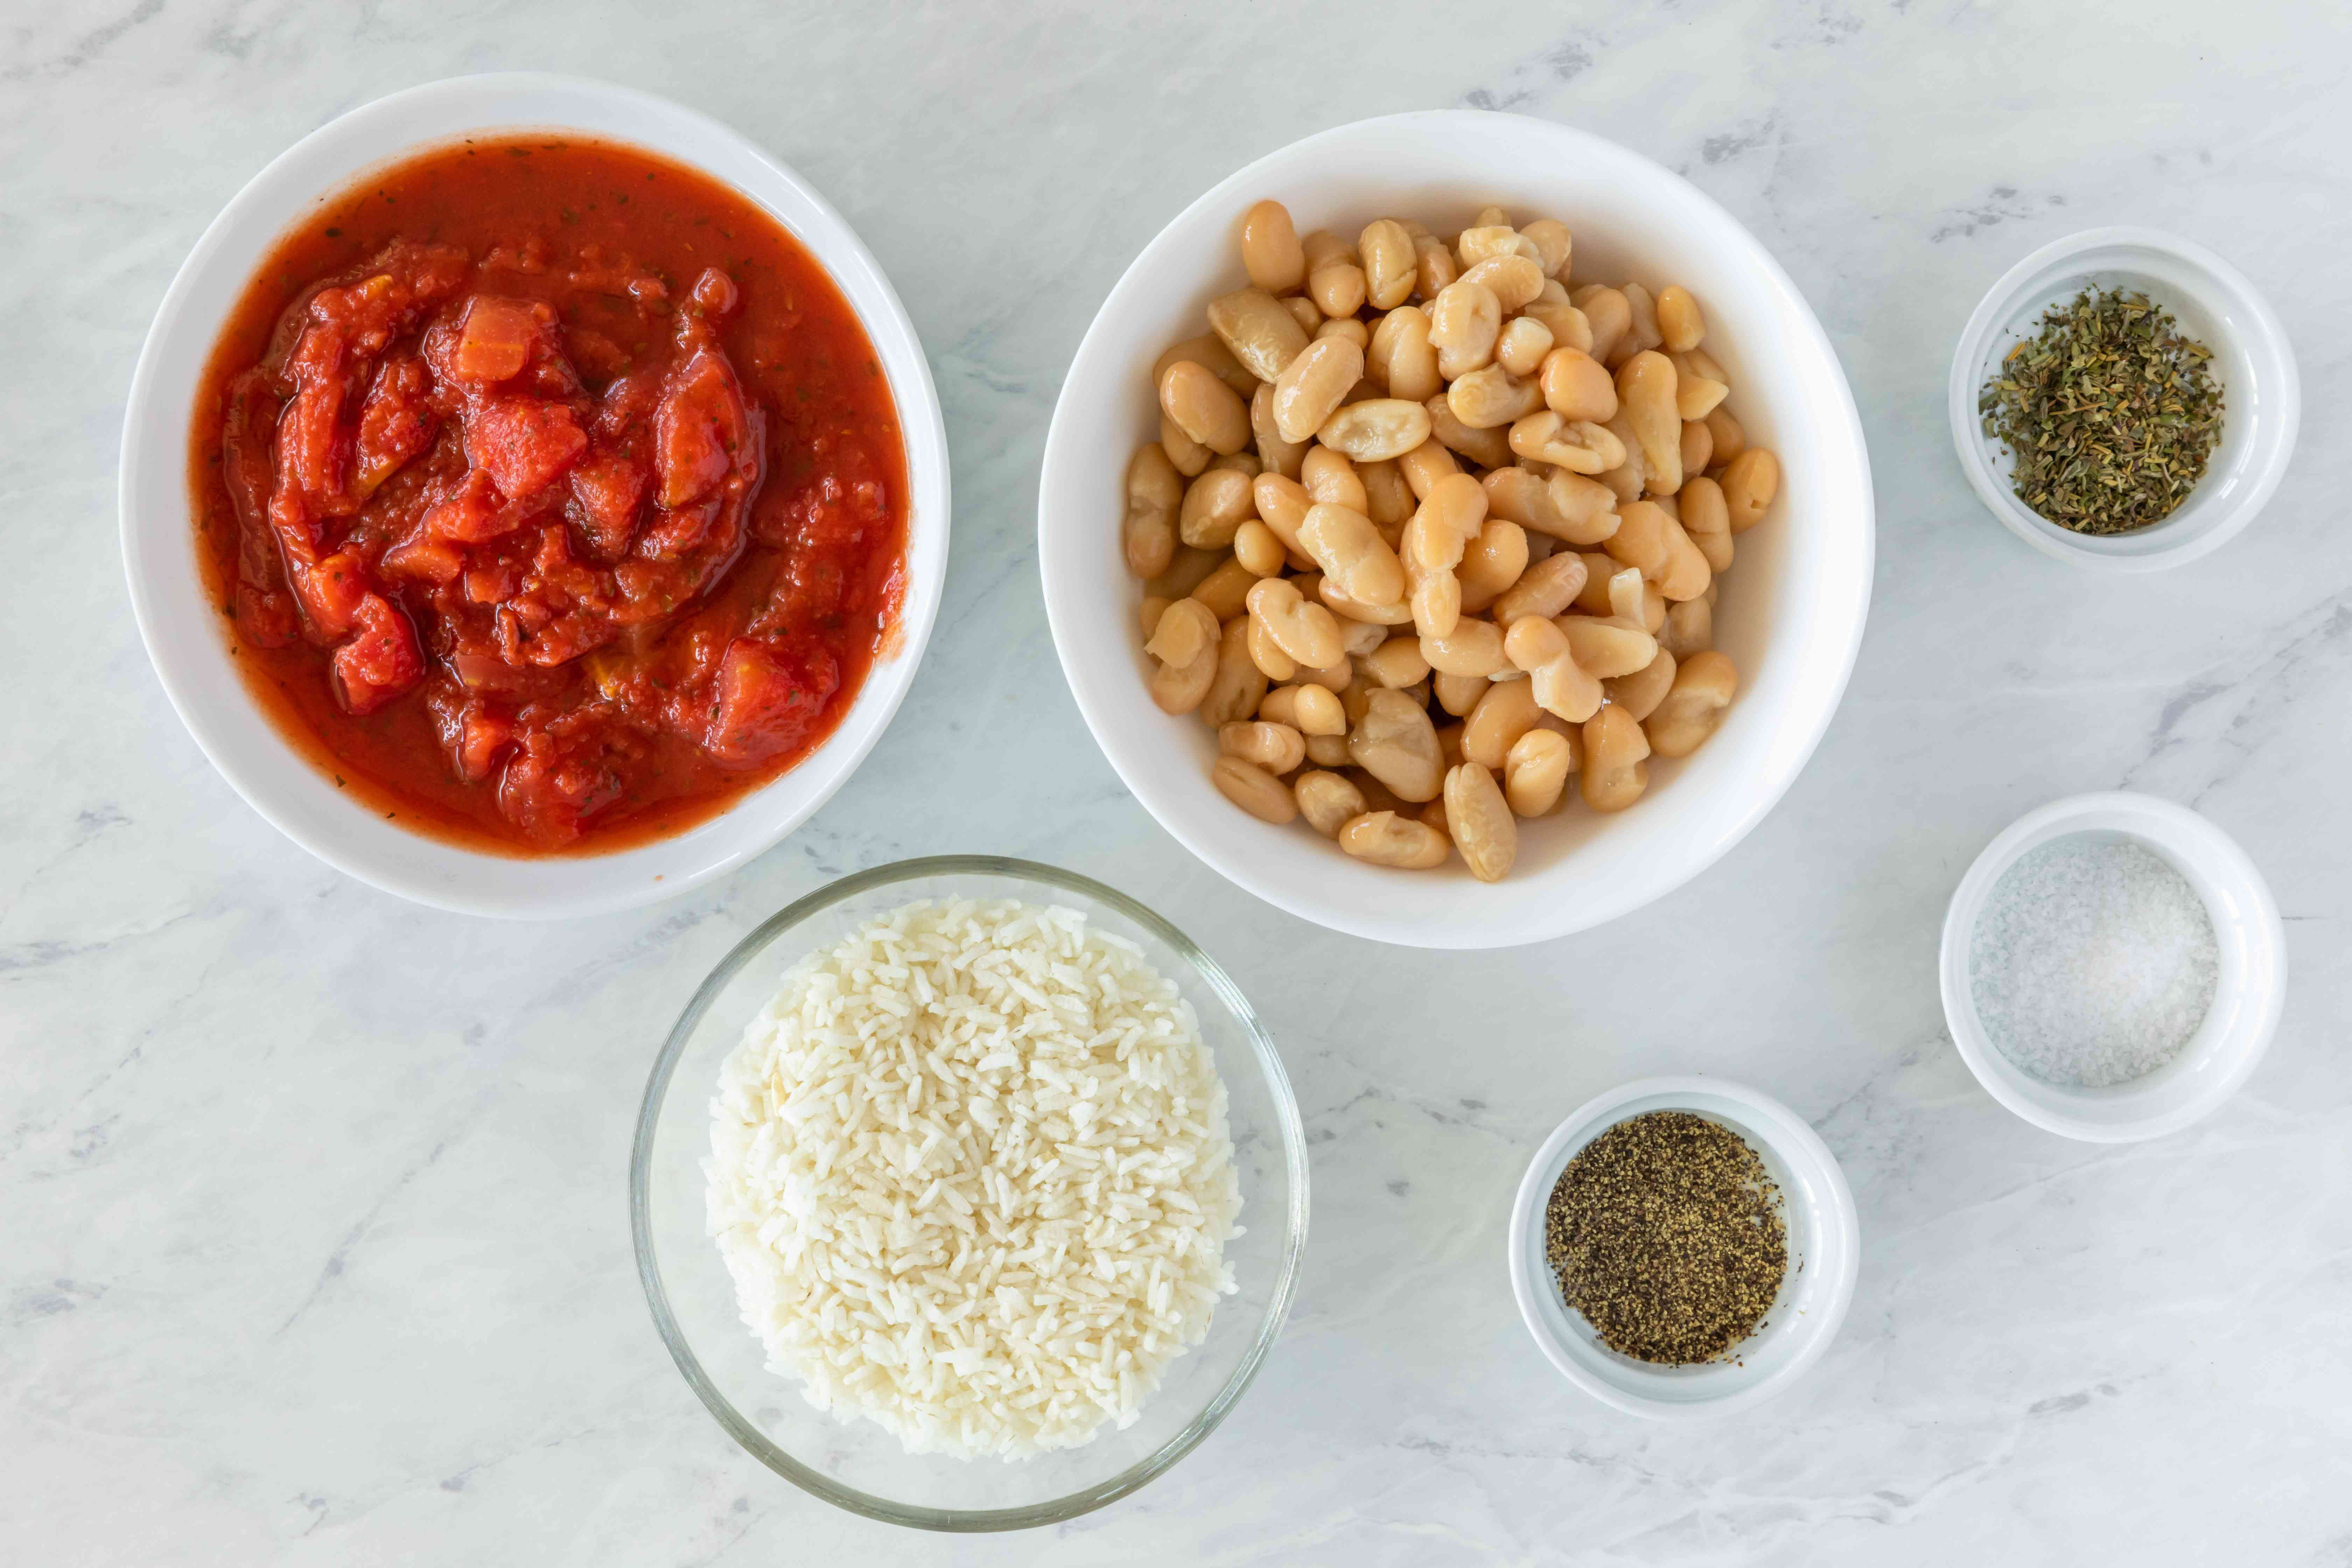 Ingredients for Italian style vegetarian rice and beans